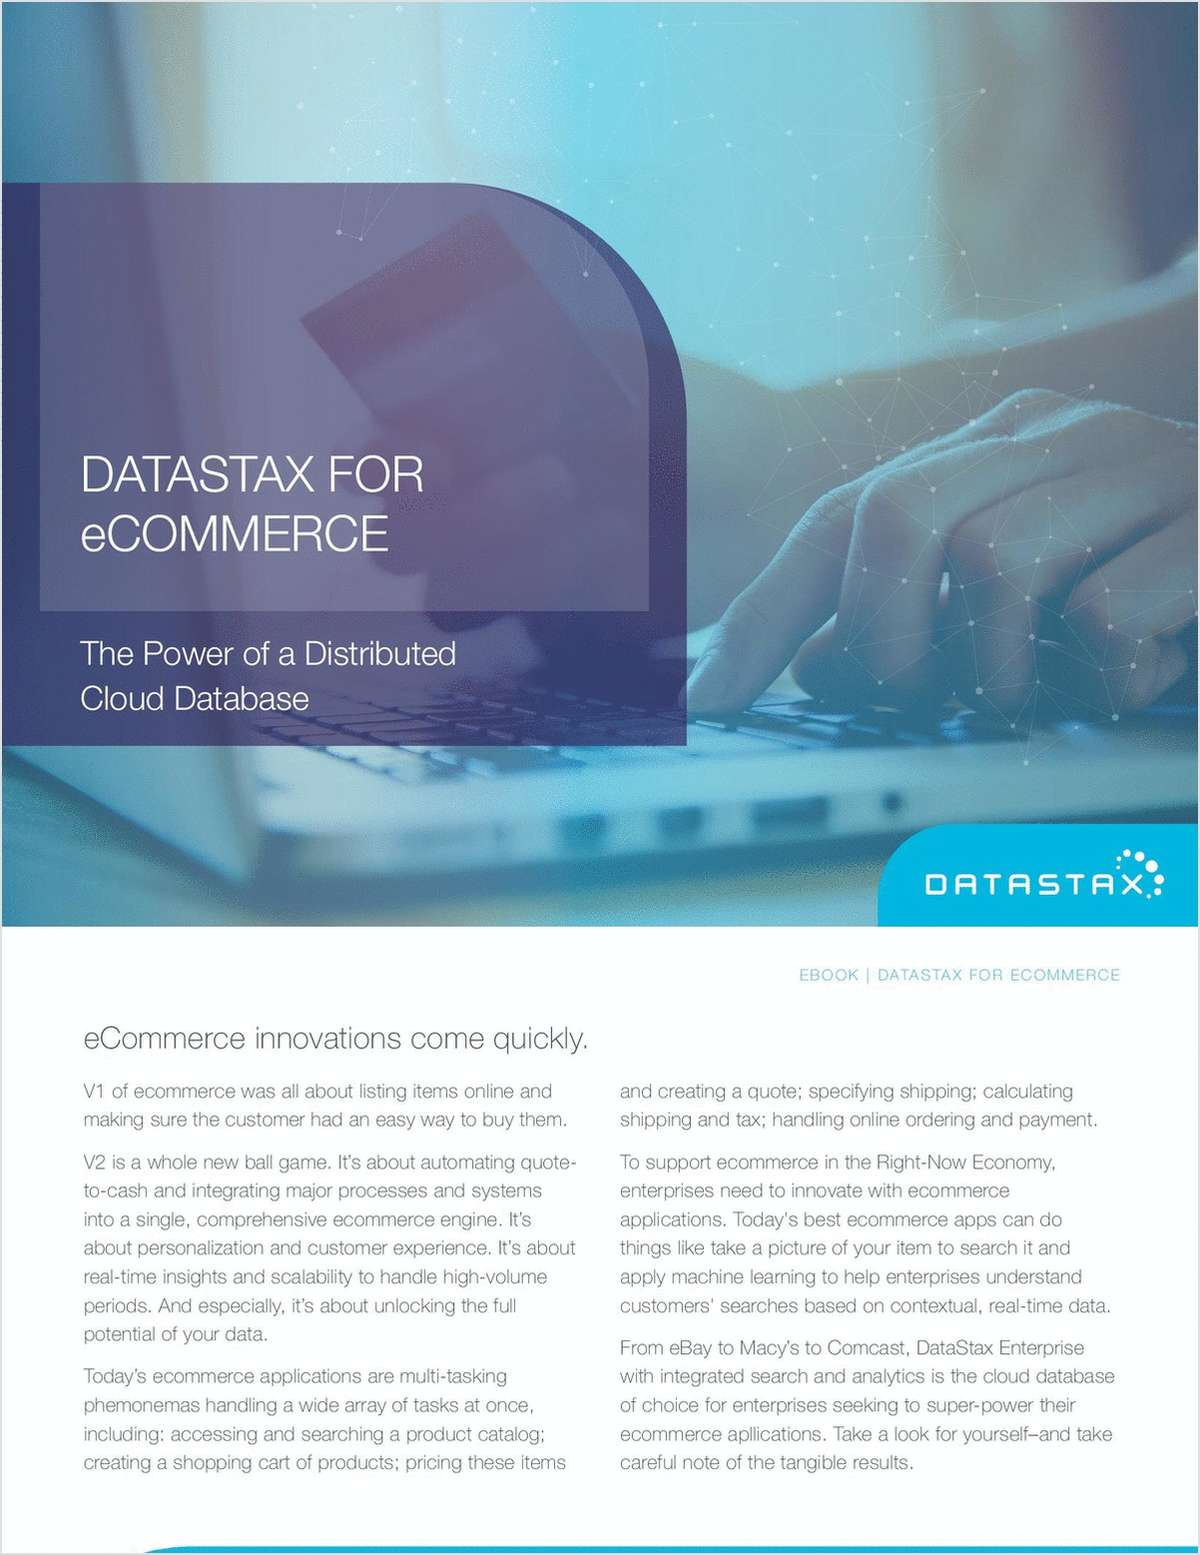 DataStax for eCommerce